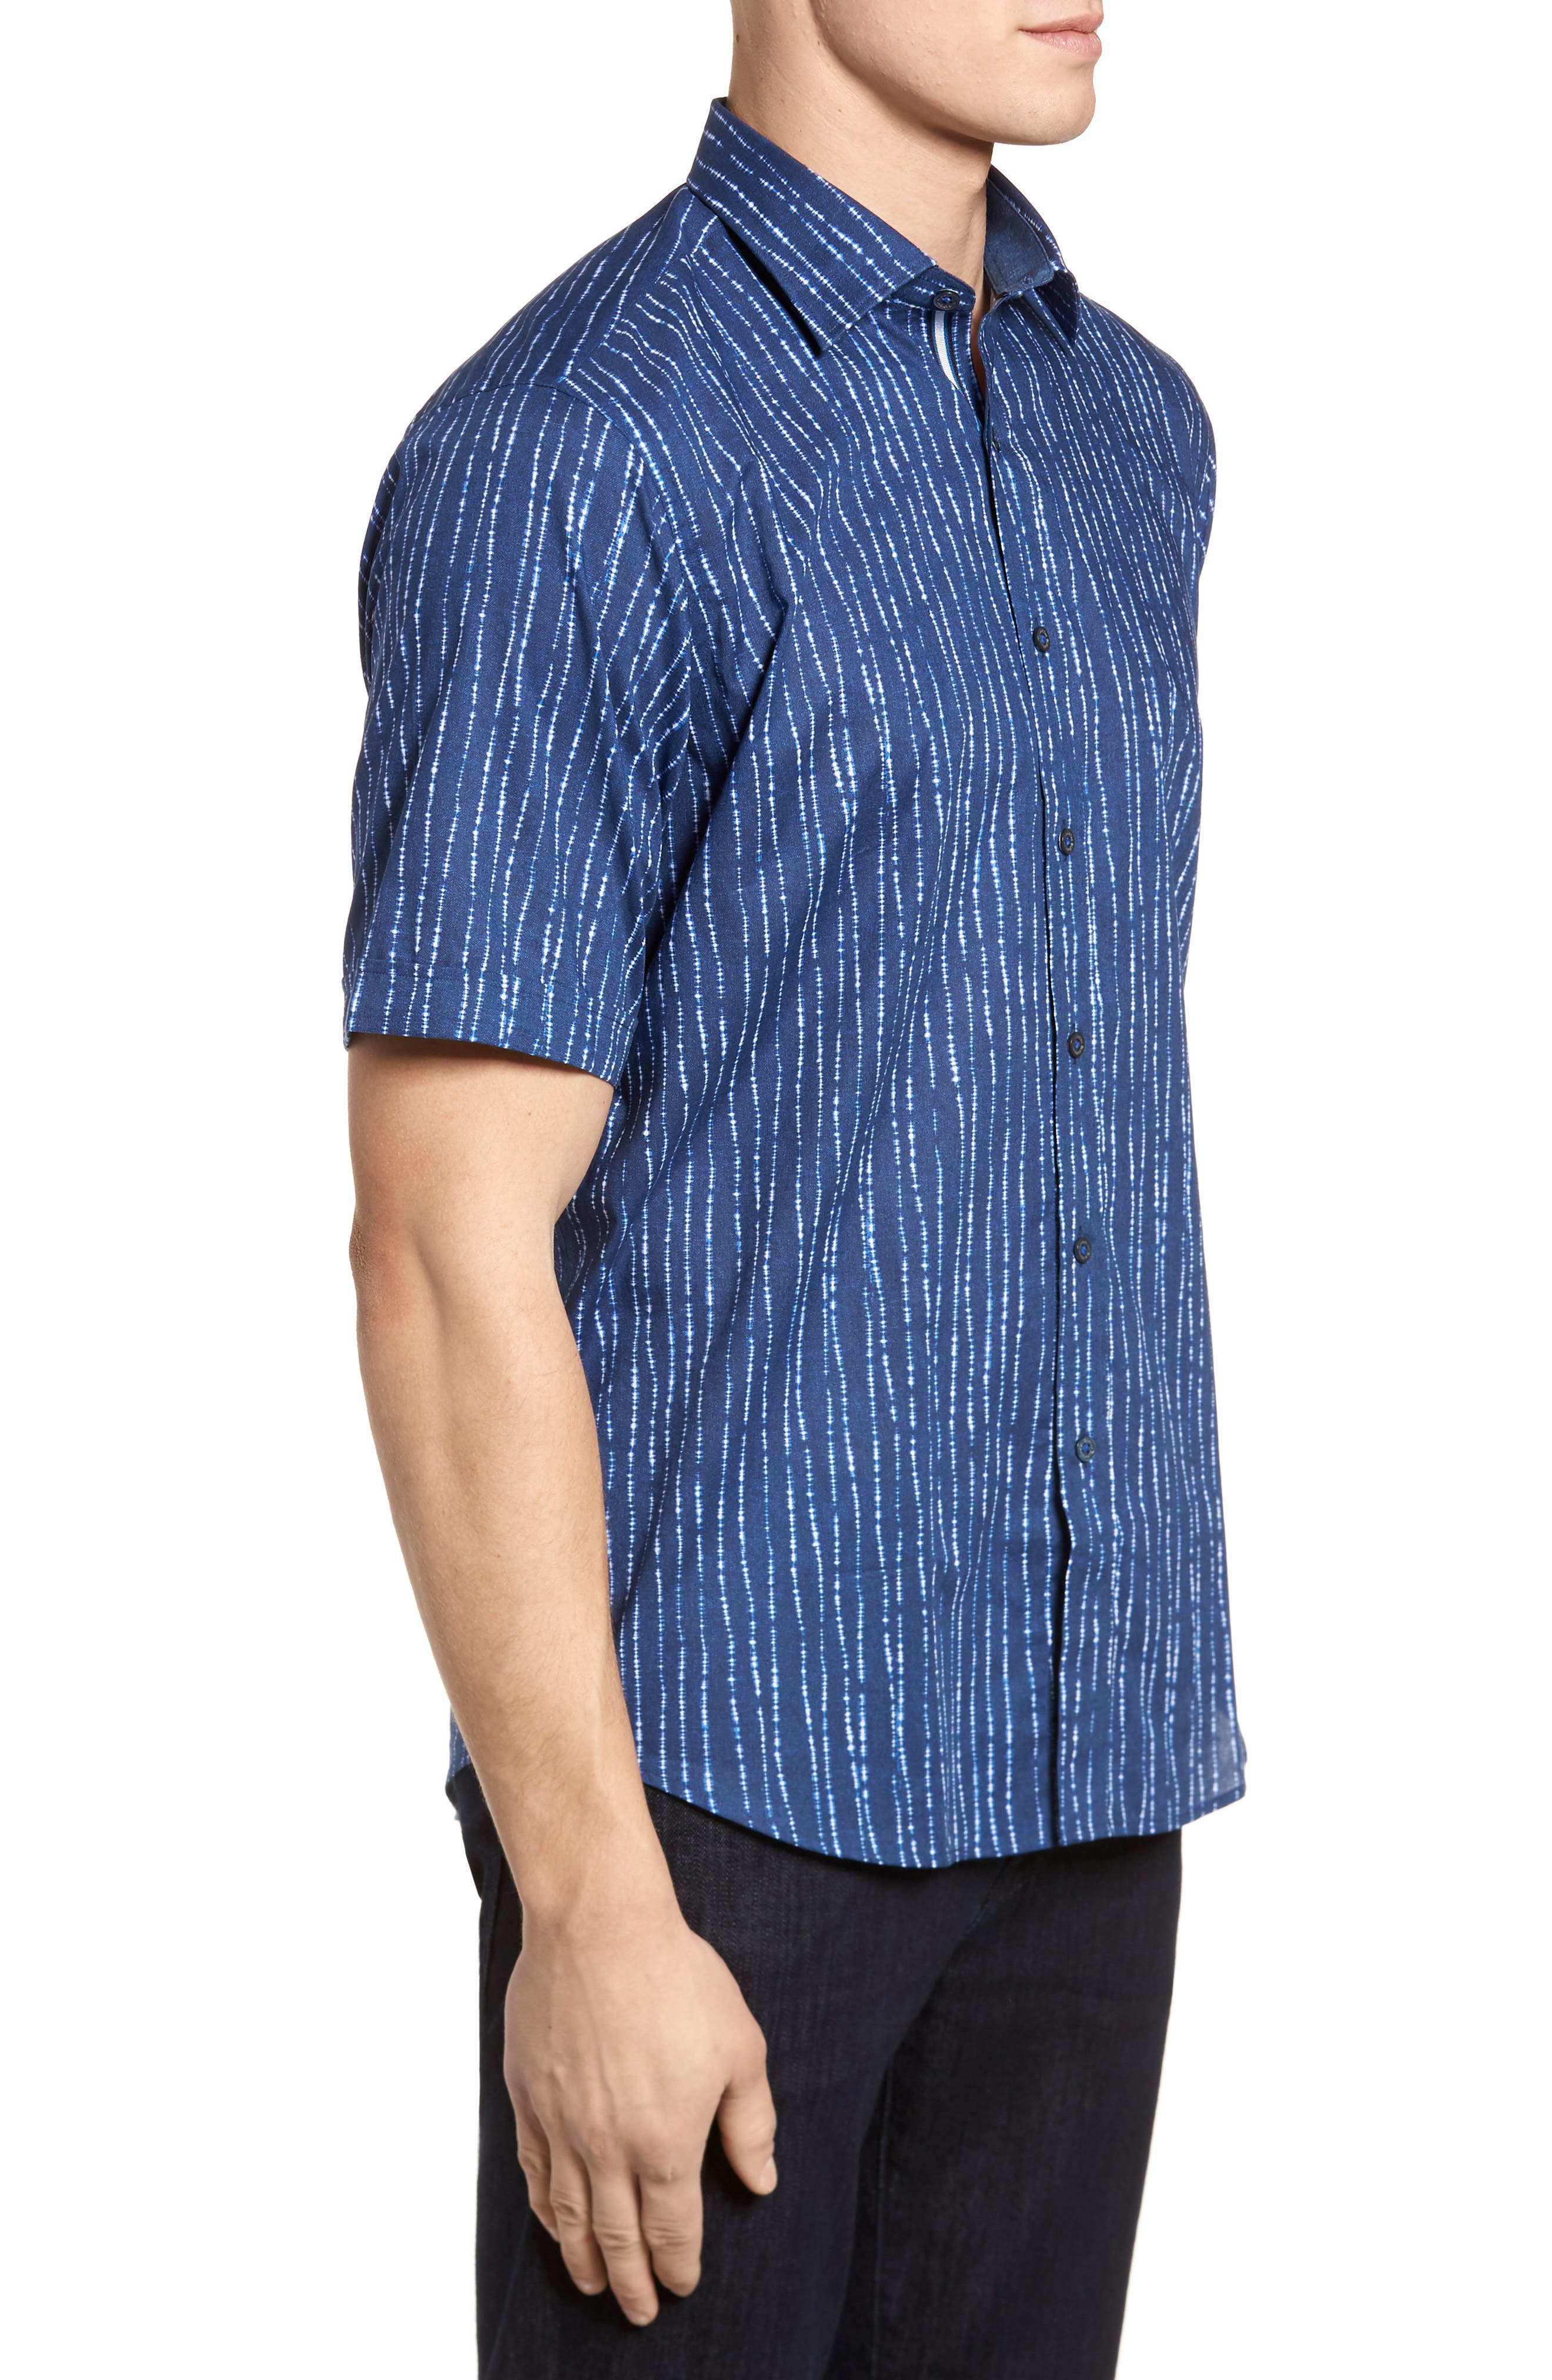 Freehand Tie Dye Lines Classic Fit Sport Shirt,                             Alternate thumbnail 3, color,                             Navy